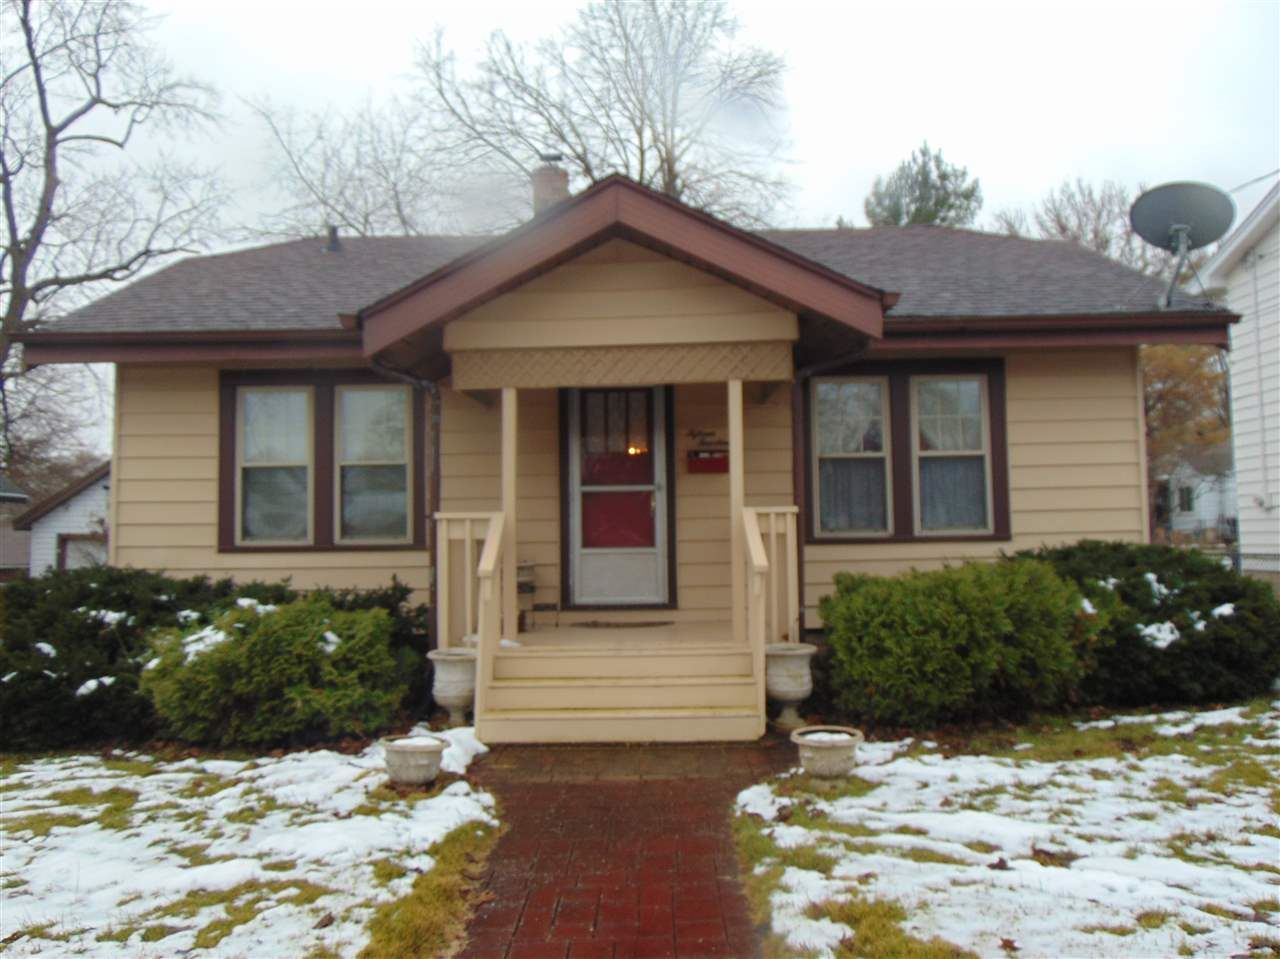 1514 Merrill St, Beloit, WI 53511-5036 - #: 1872840